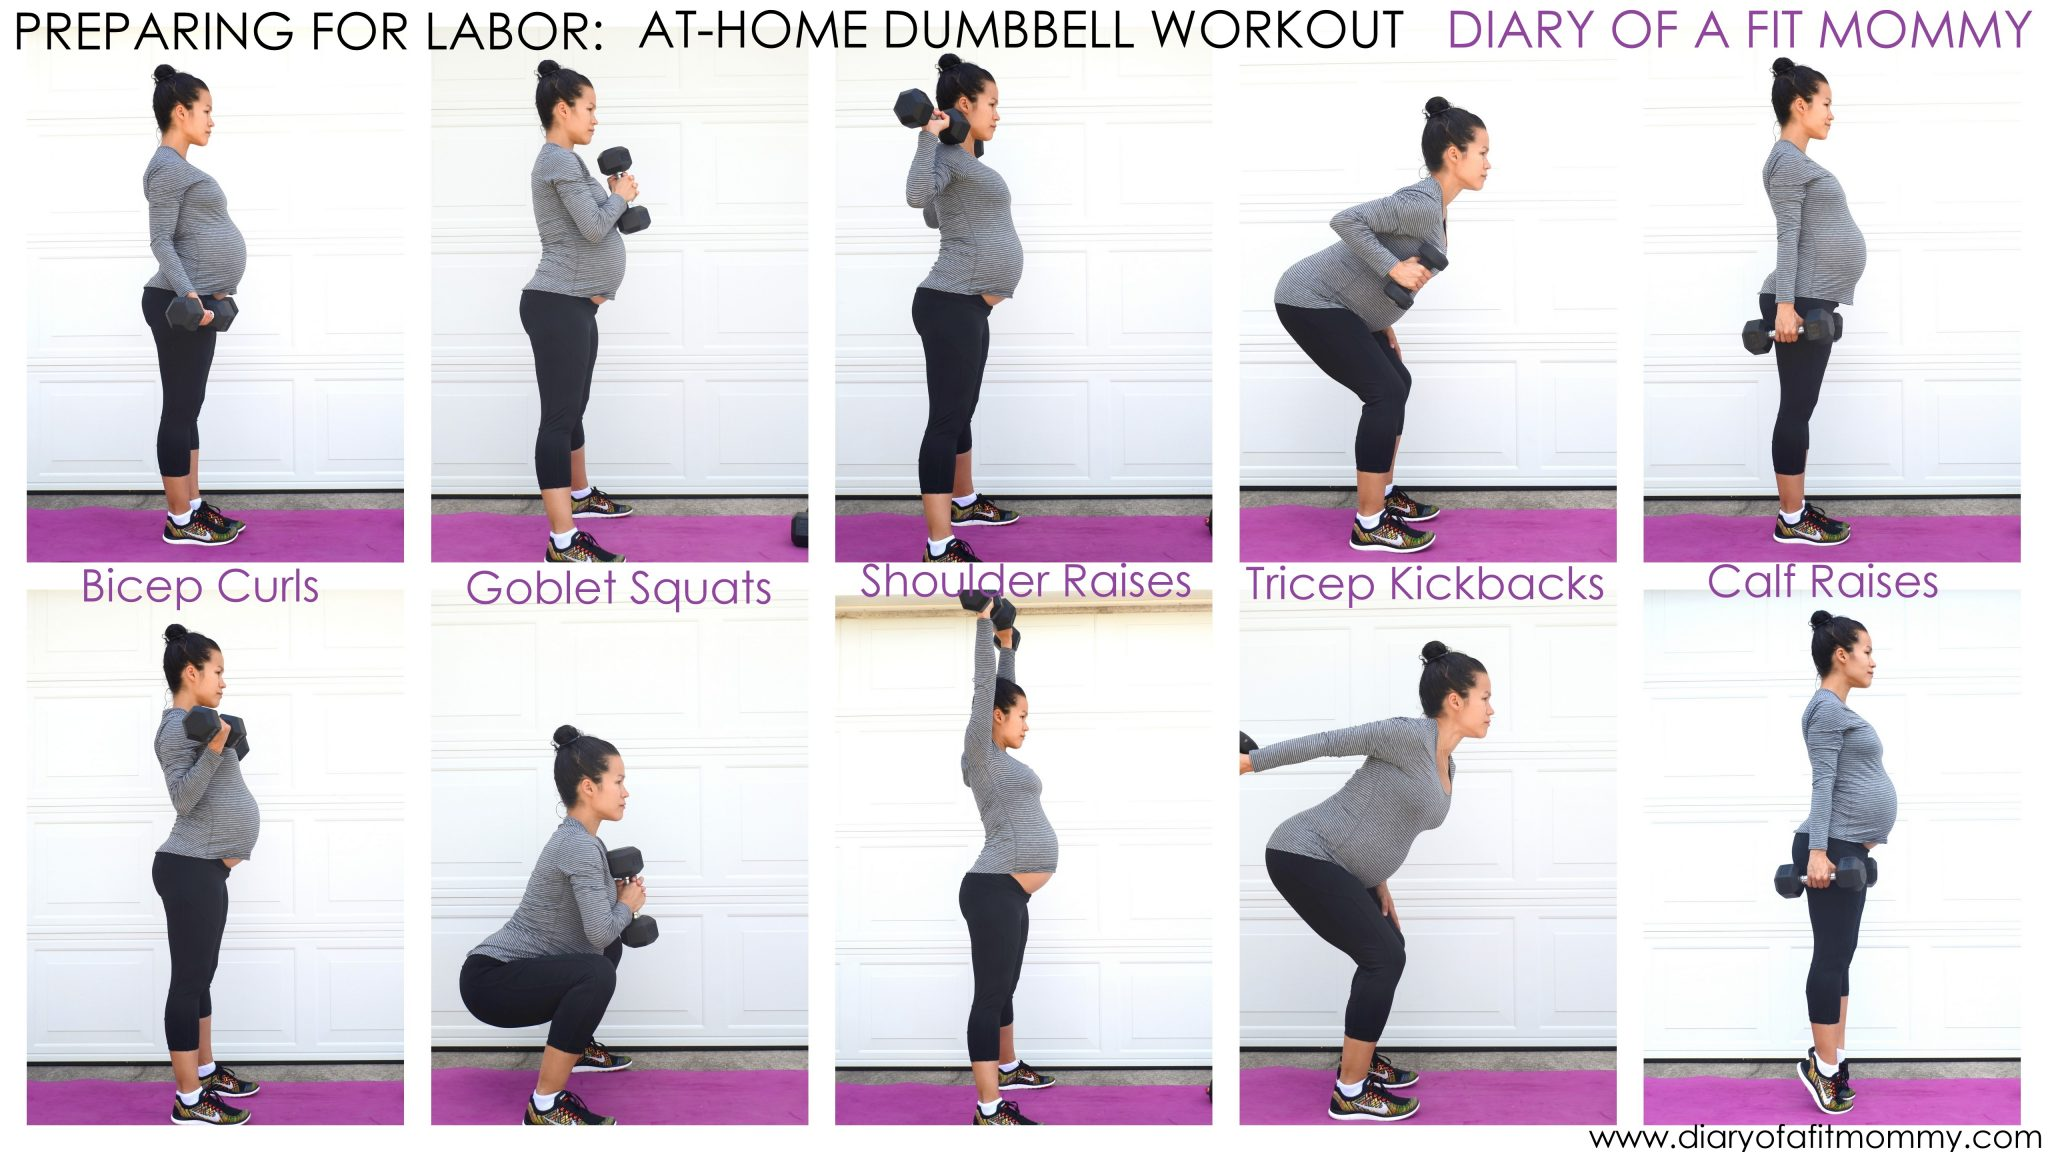 Preparing For Labor At Home Dumbbell Workout